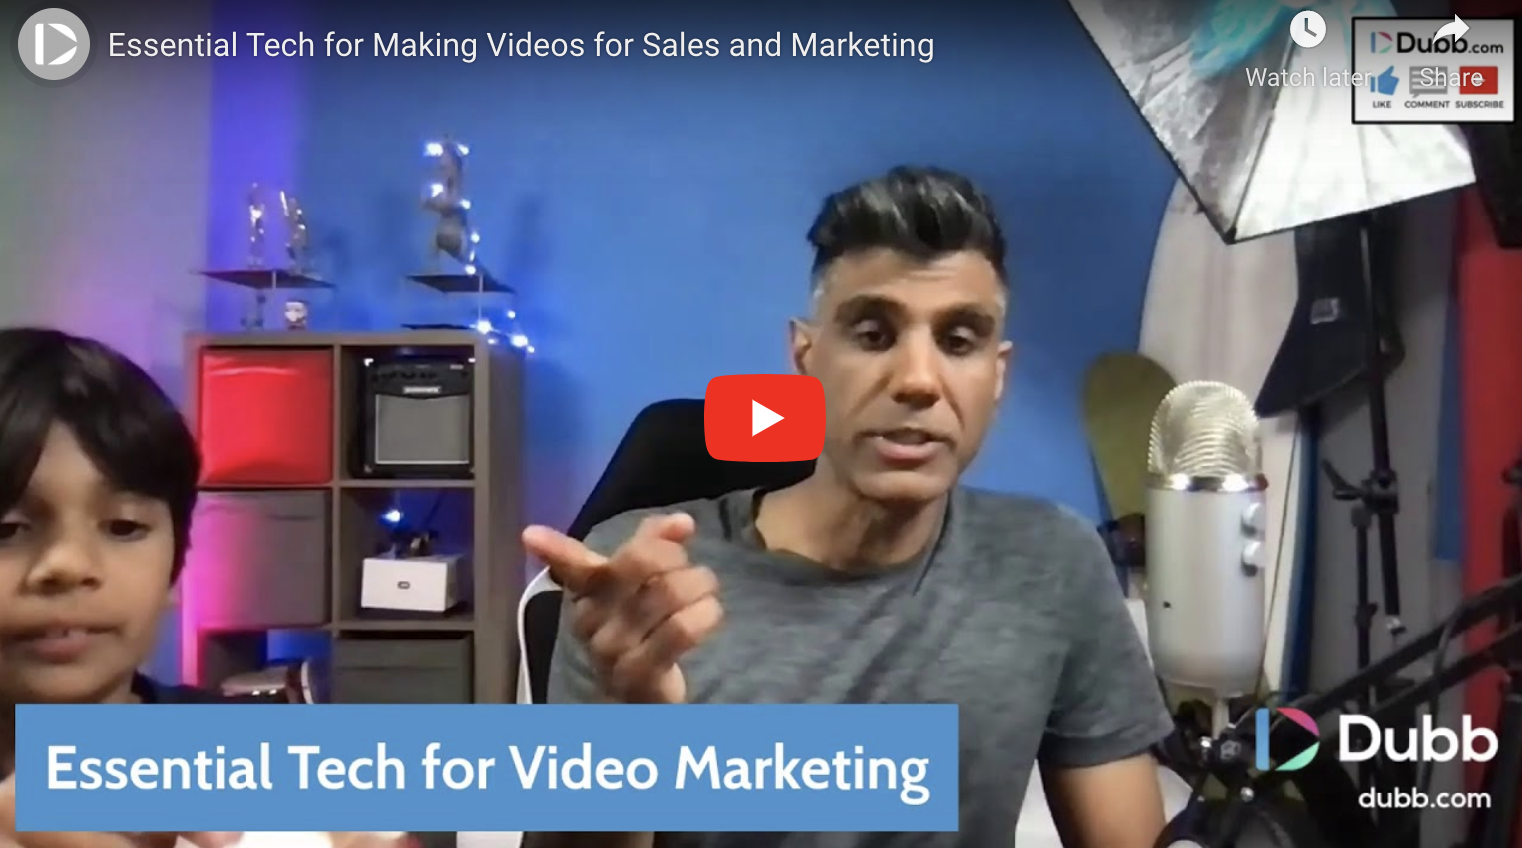 Essential Technology for Making Videos for Sales and Marketing